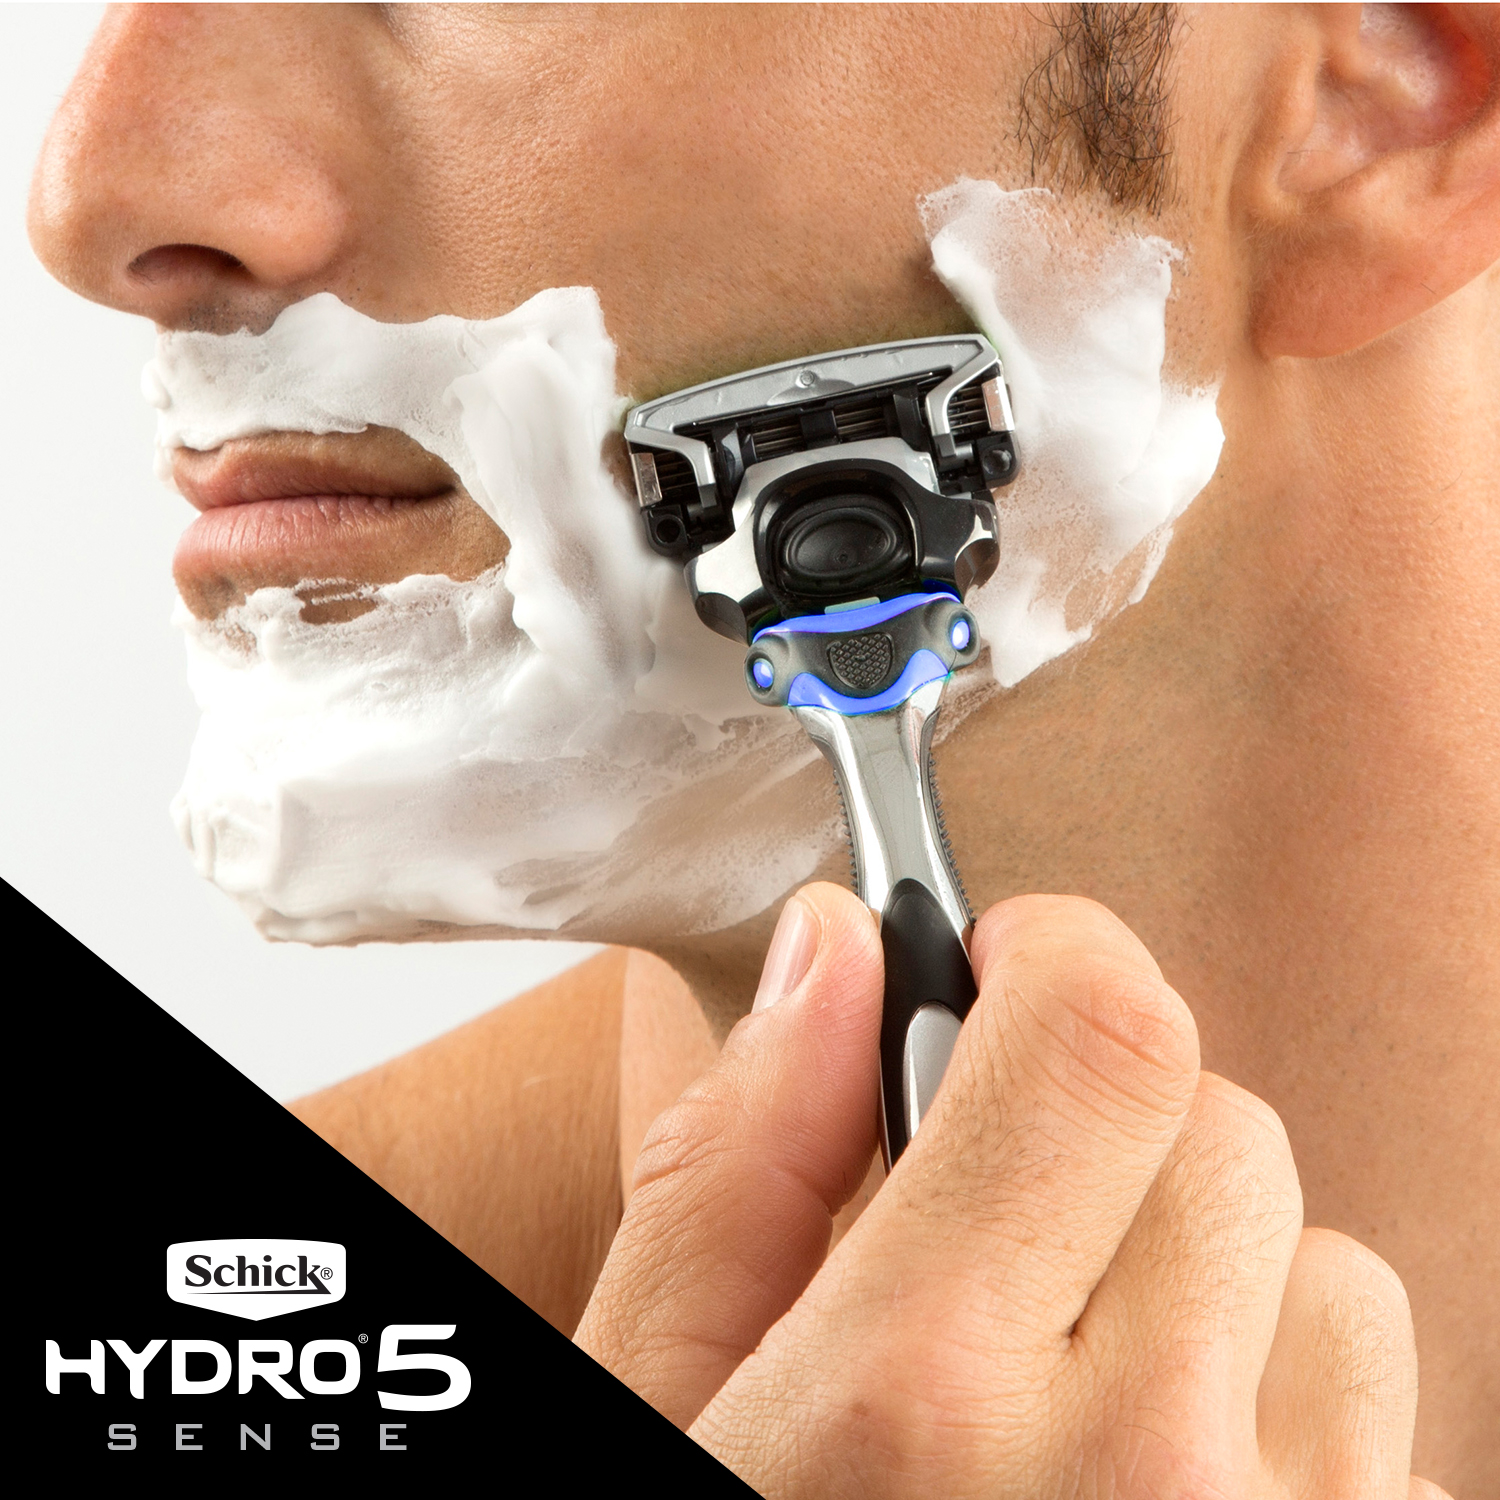 EPC_1226941_CP_MShave_Hydro5_Amazon_HYDRATELifestyle_use_3_B.jpg